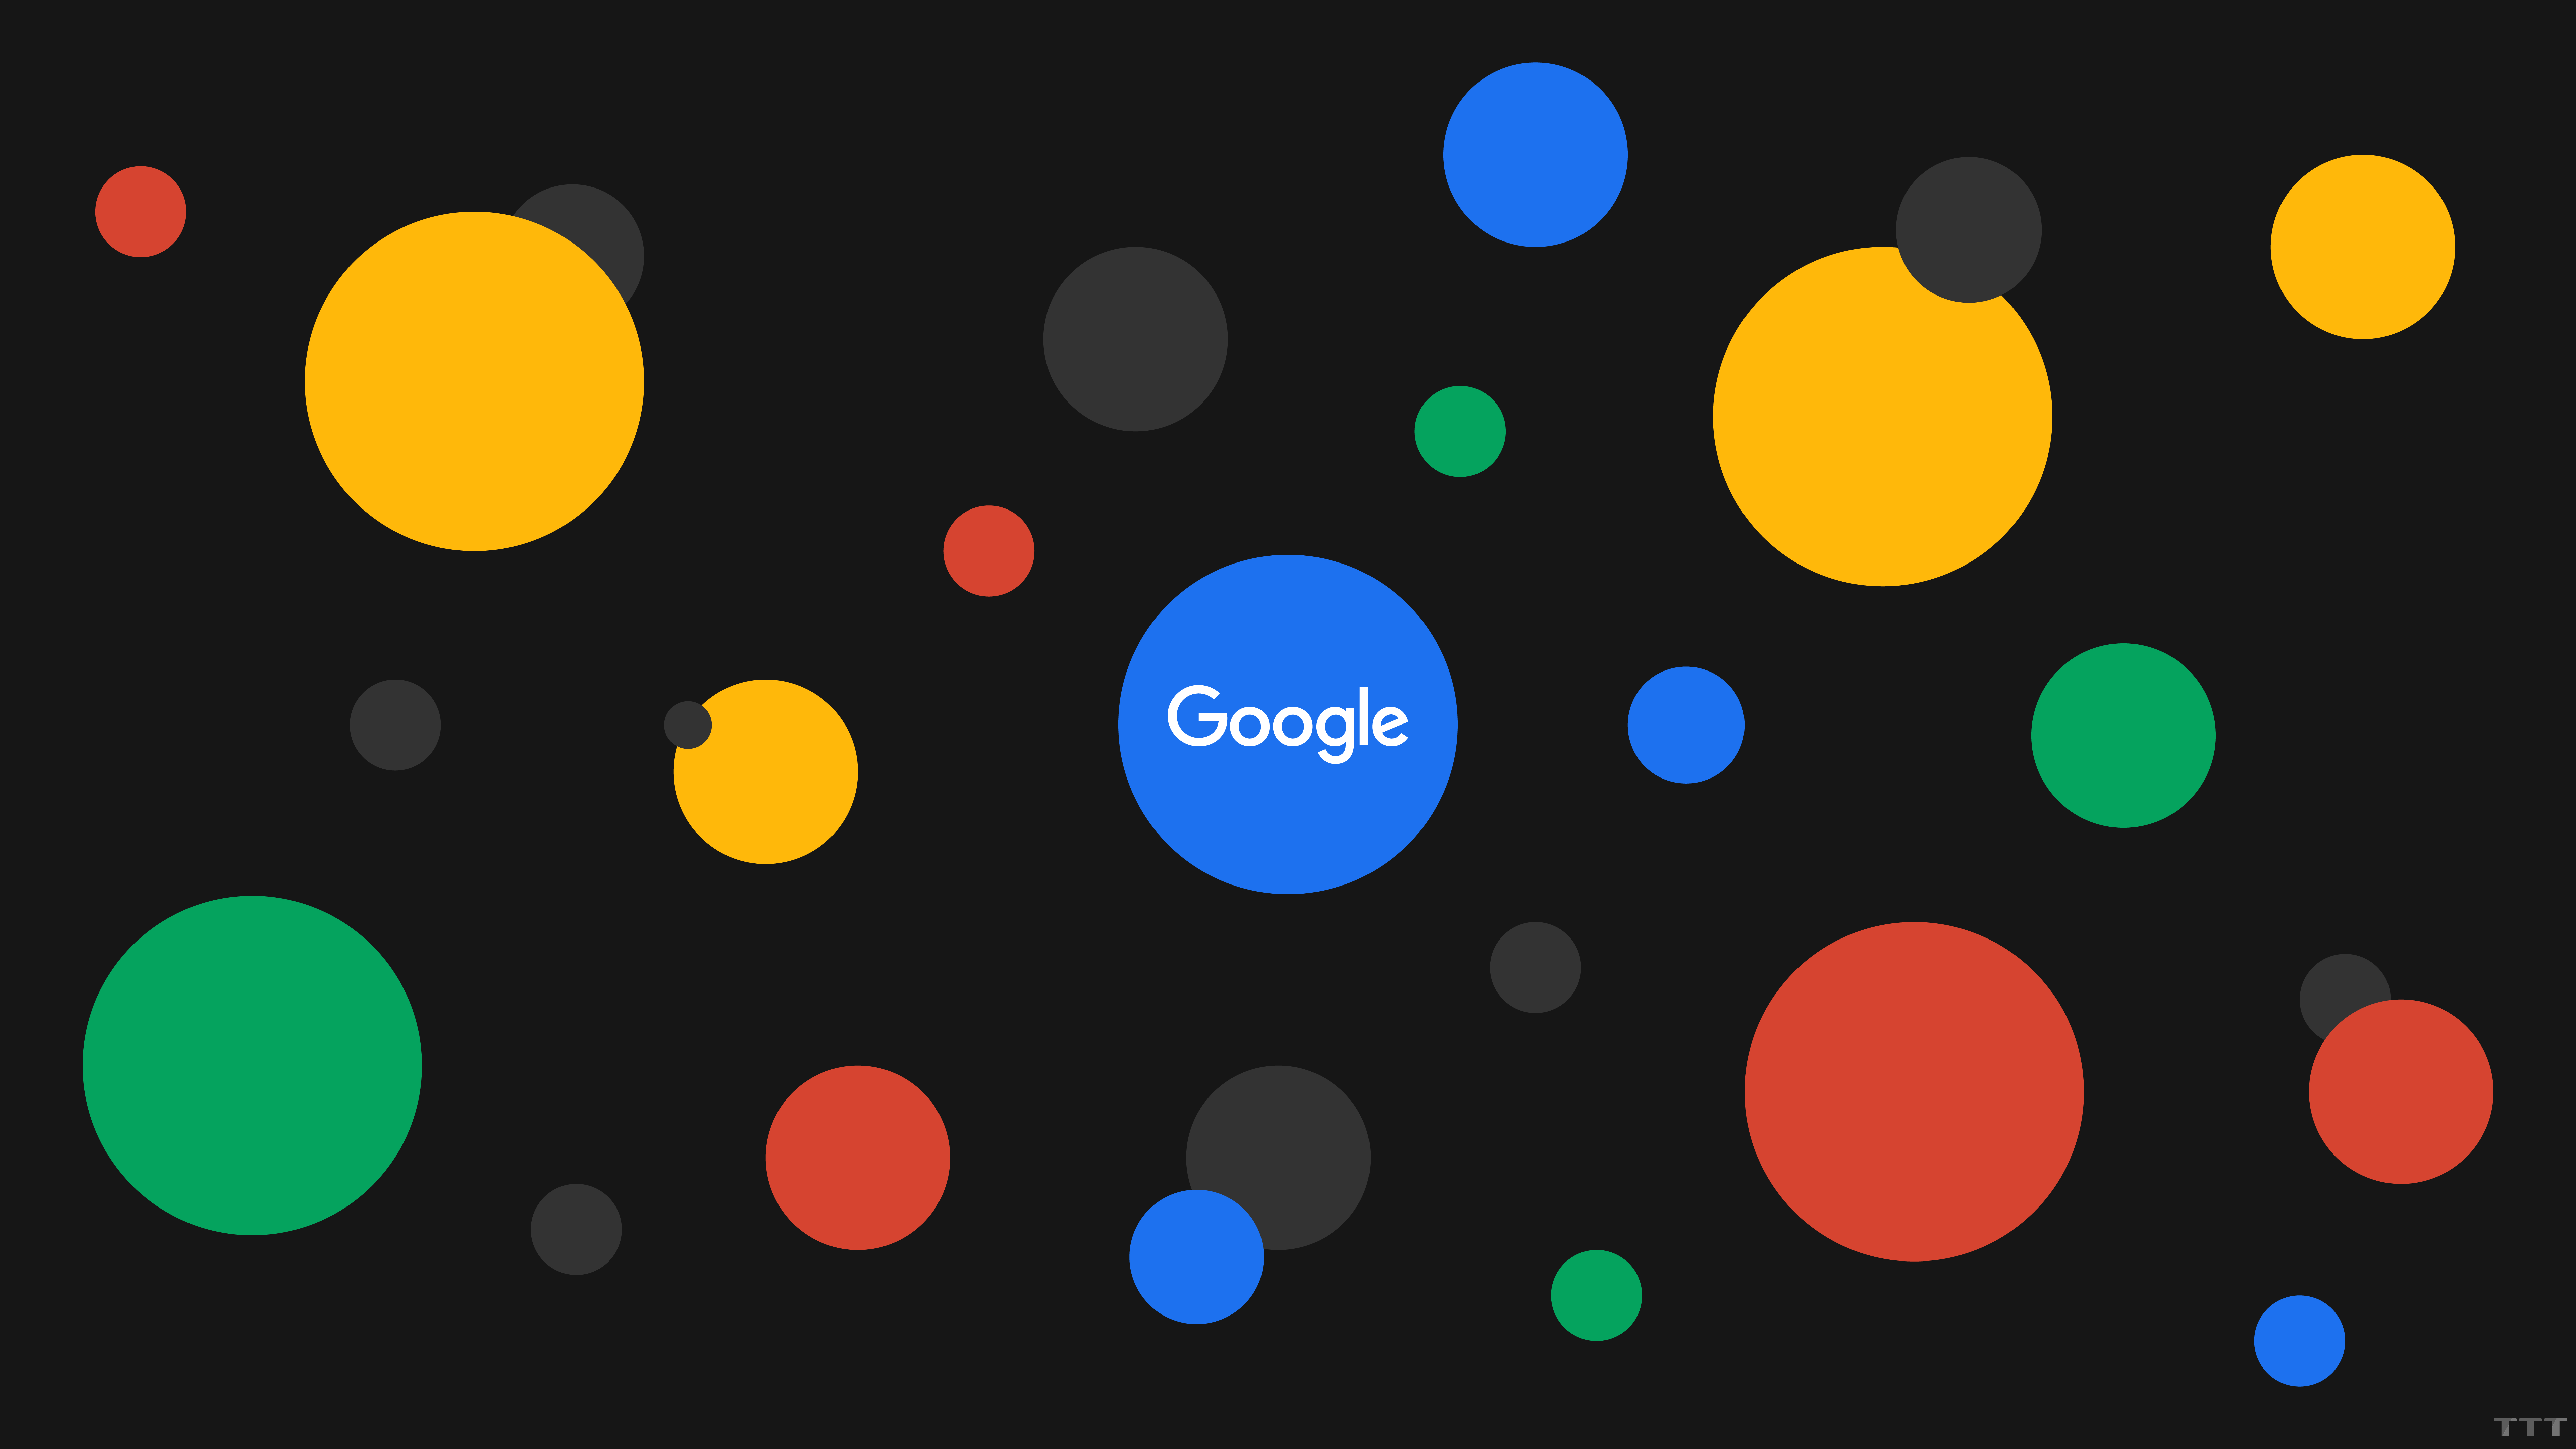 Free Download 18653 Google Wallpaper Backgrounds 7680x4320 For